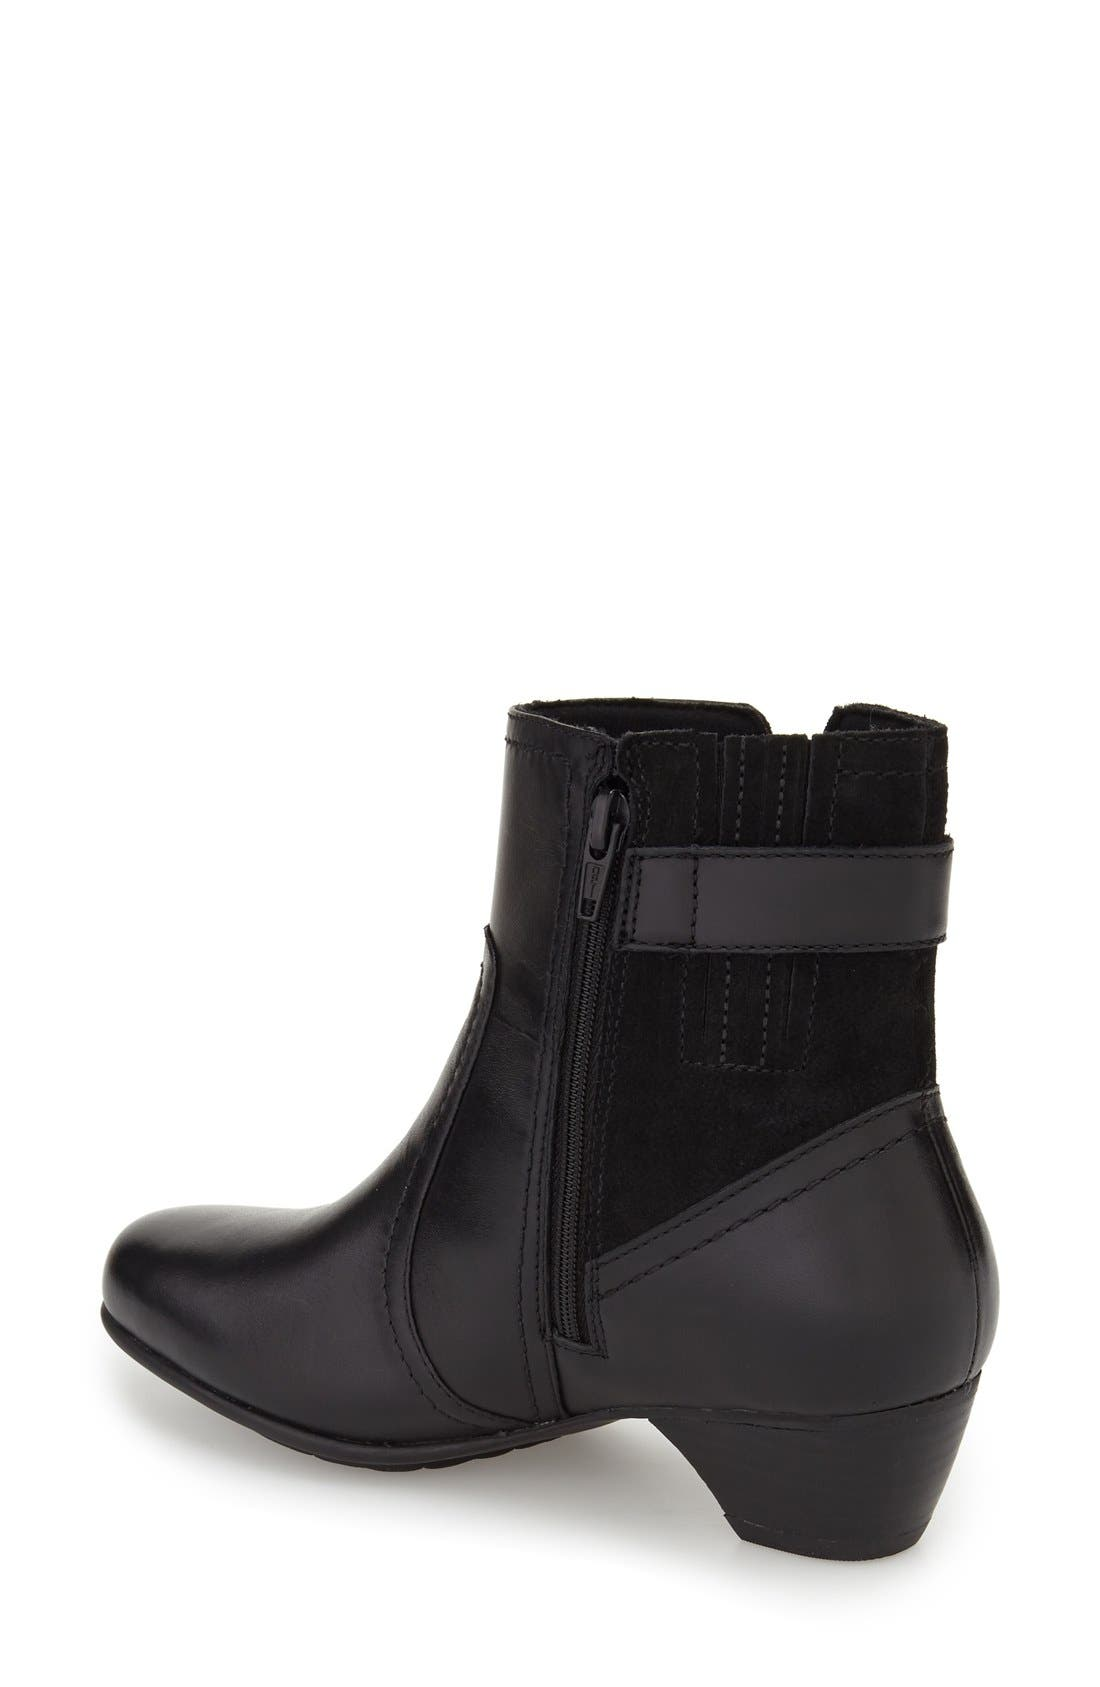 Alternate Image 2  - Aravon 'Patrina' Waterproof Zip Bootie (Women)